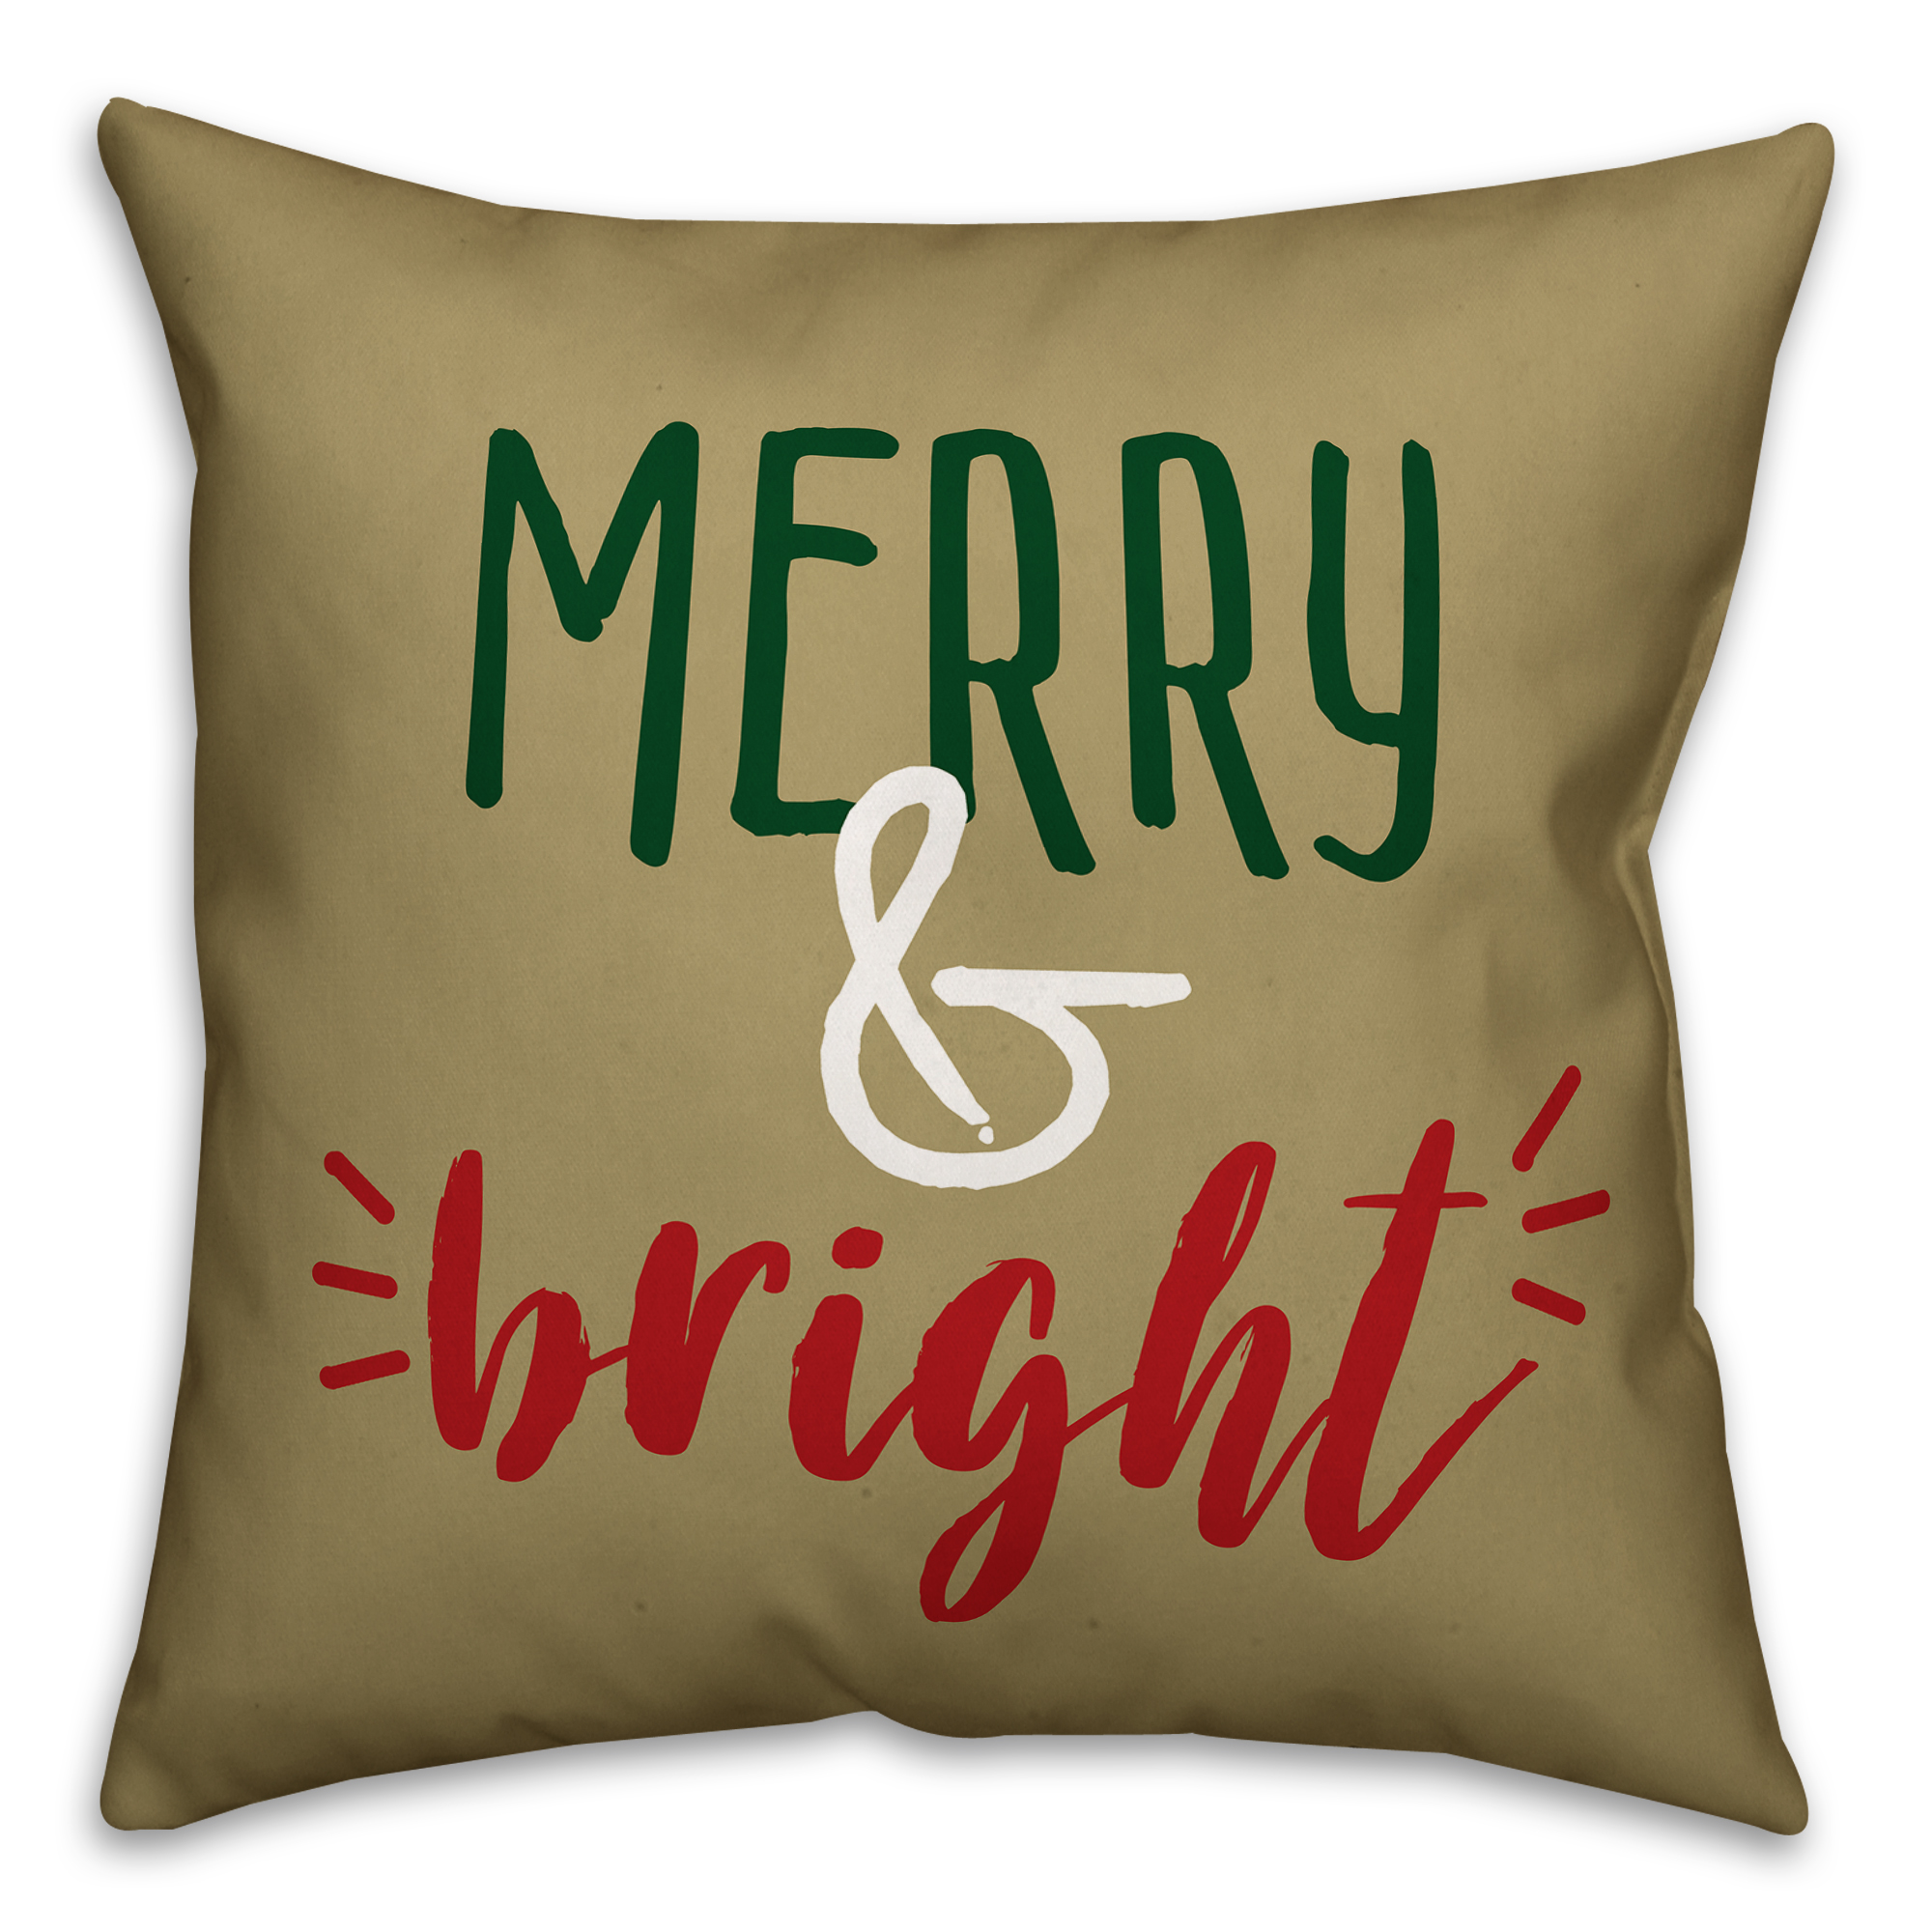 Merry and Bright 20x20 Spun Poly Pillow Cover